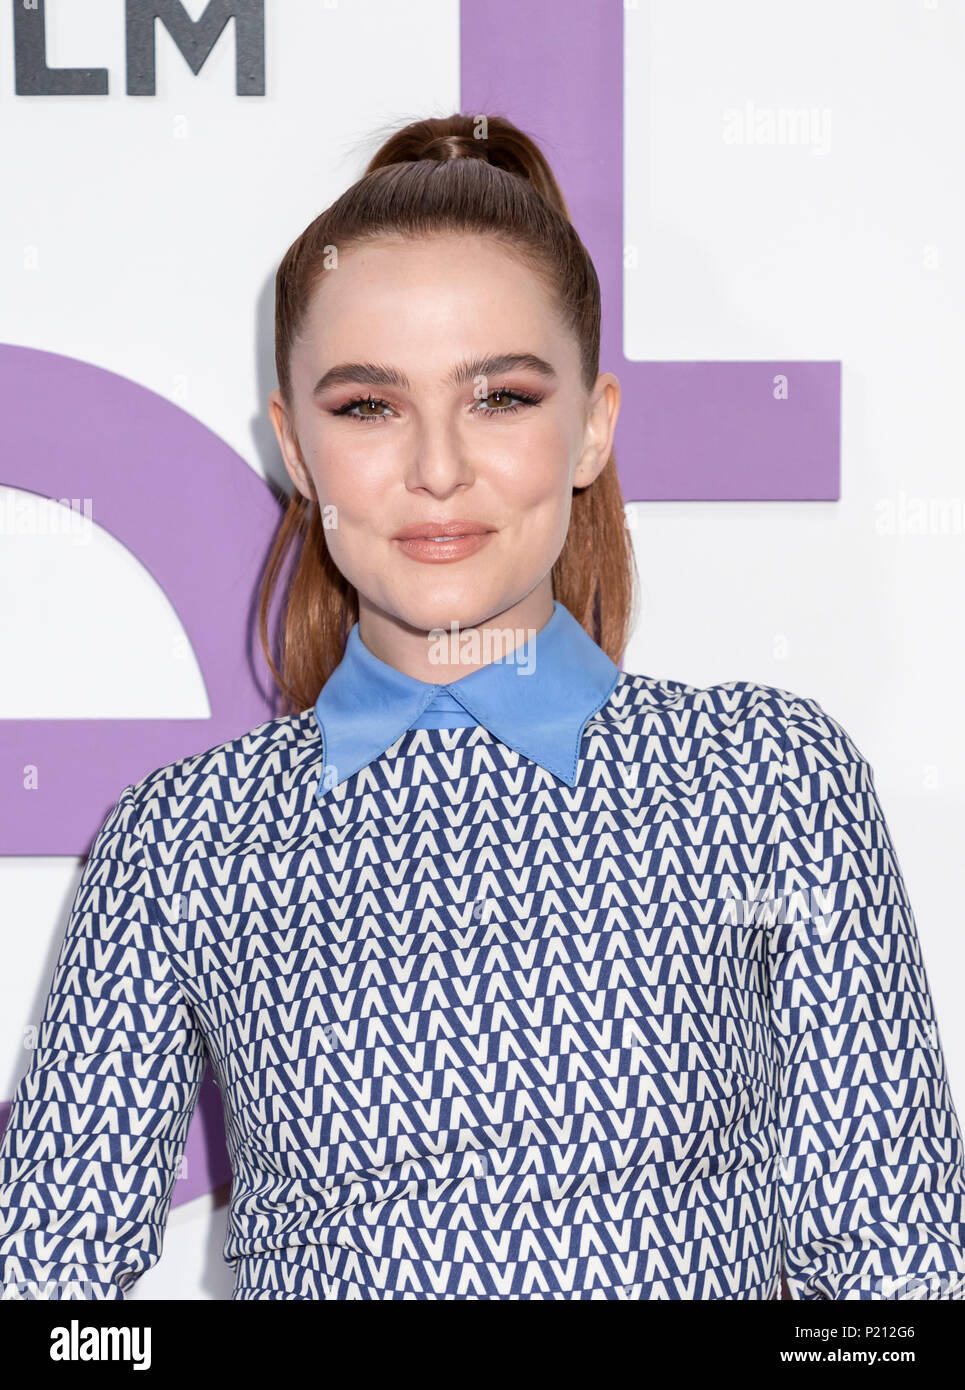 New York, NY, USA - June 12, 2018: Zoey Deutch attends the New York special screening of the Netflix film 'Set It Up' at AMC Loews Lincoln Square Credit: Sam Aronov/Alamy Live News - Stock Image